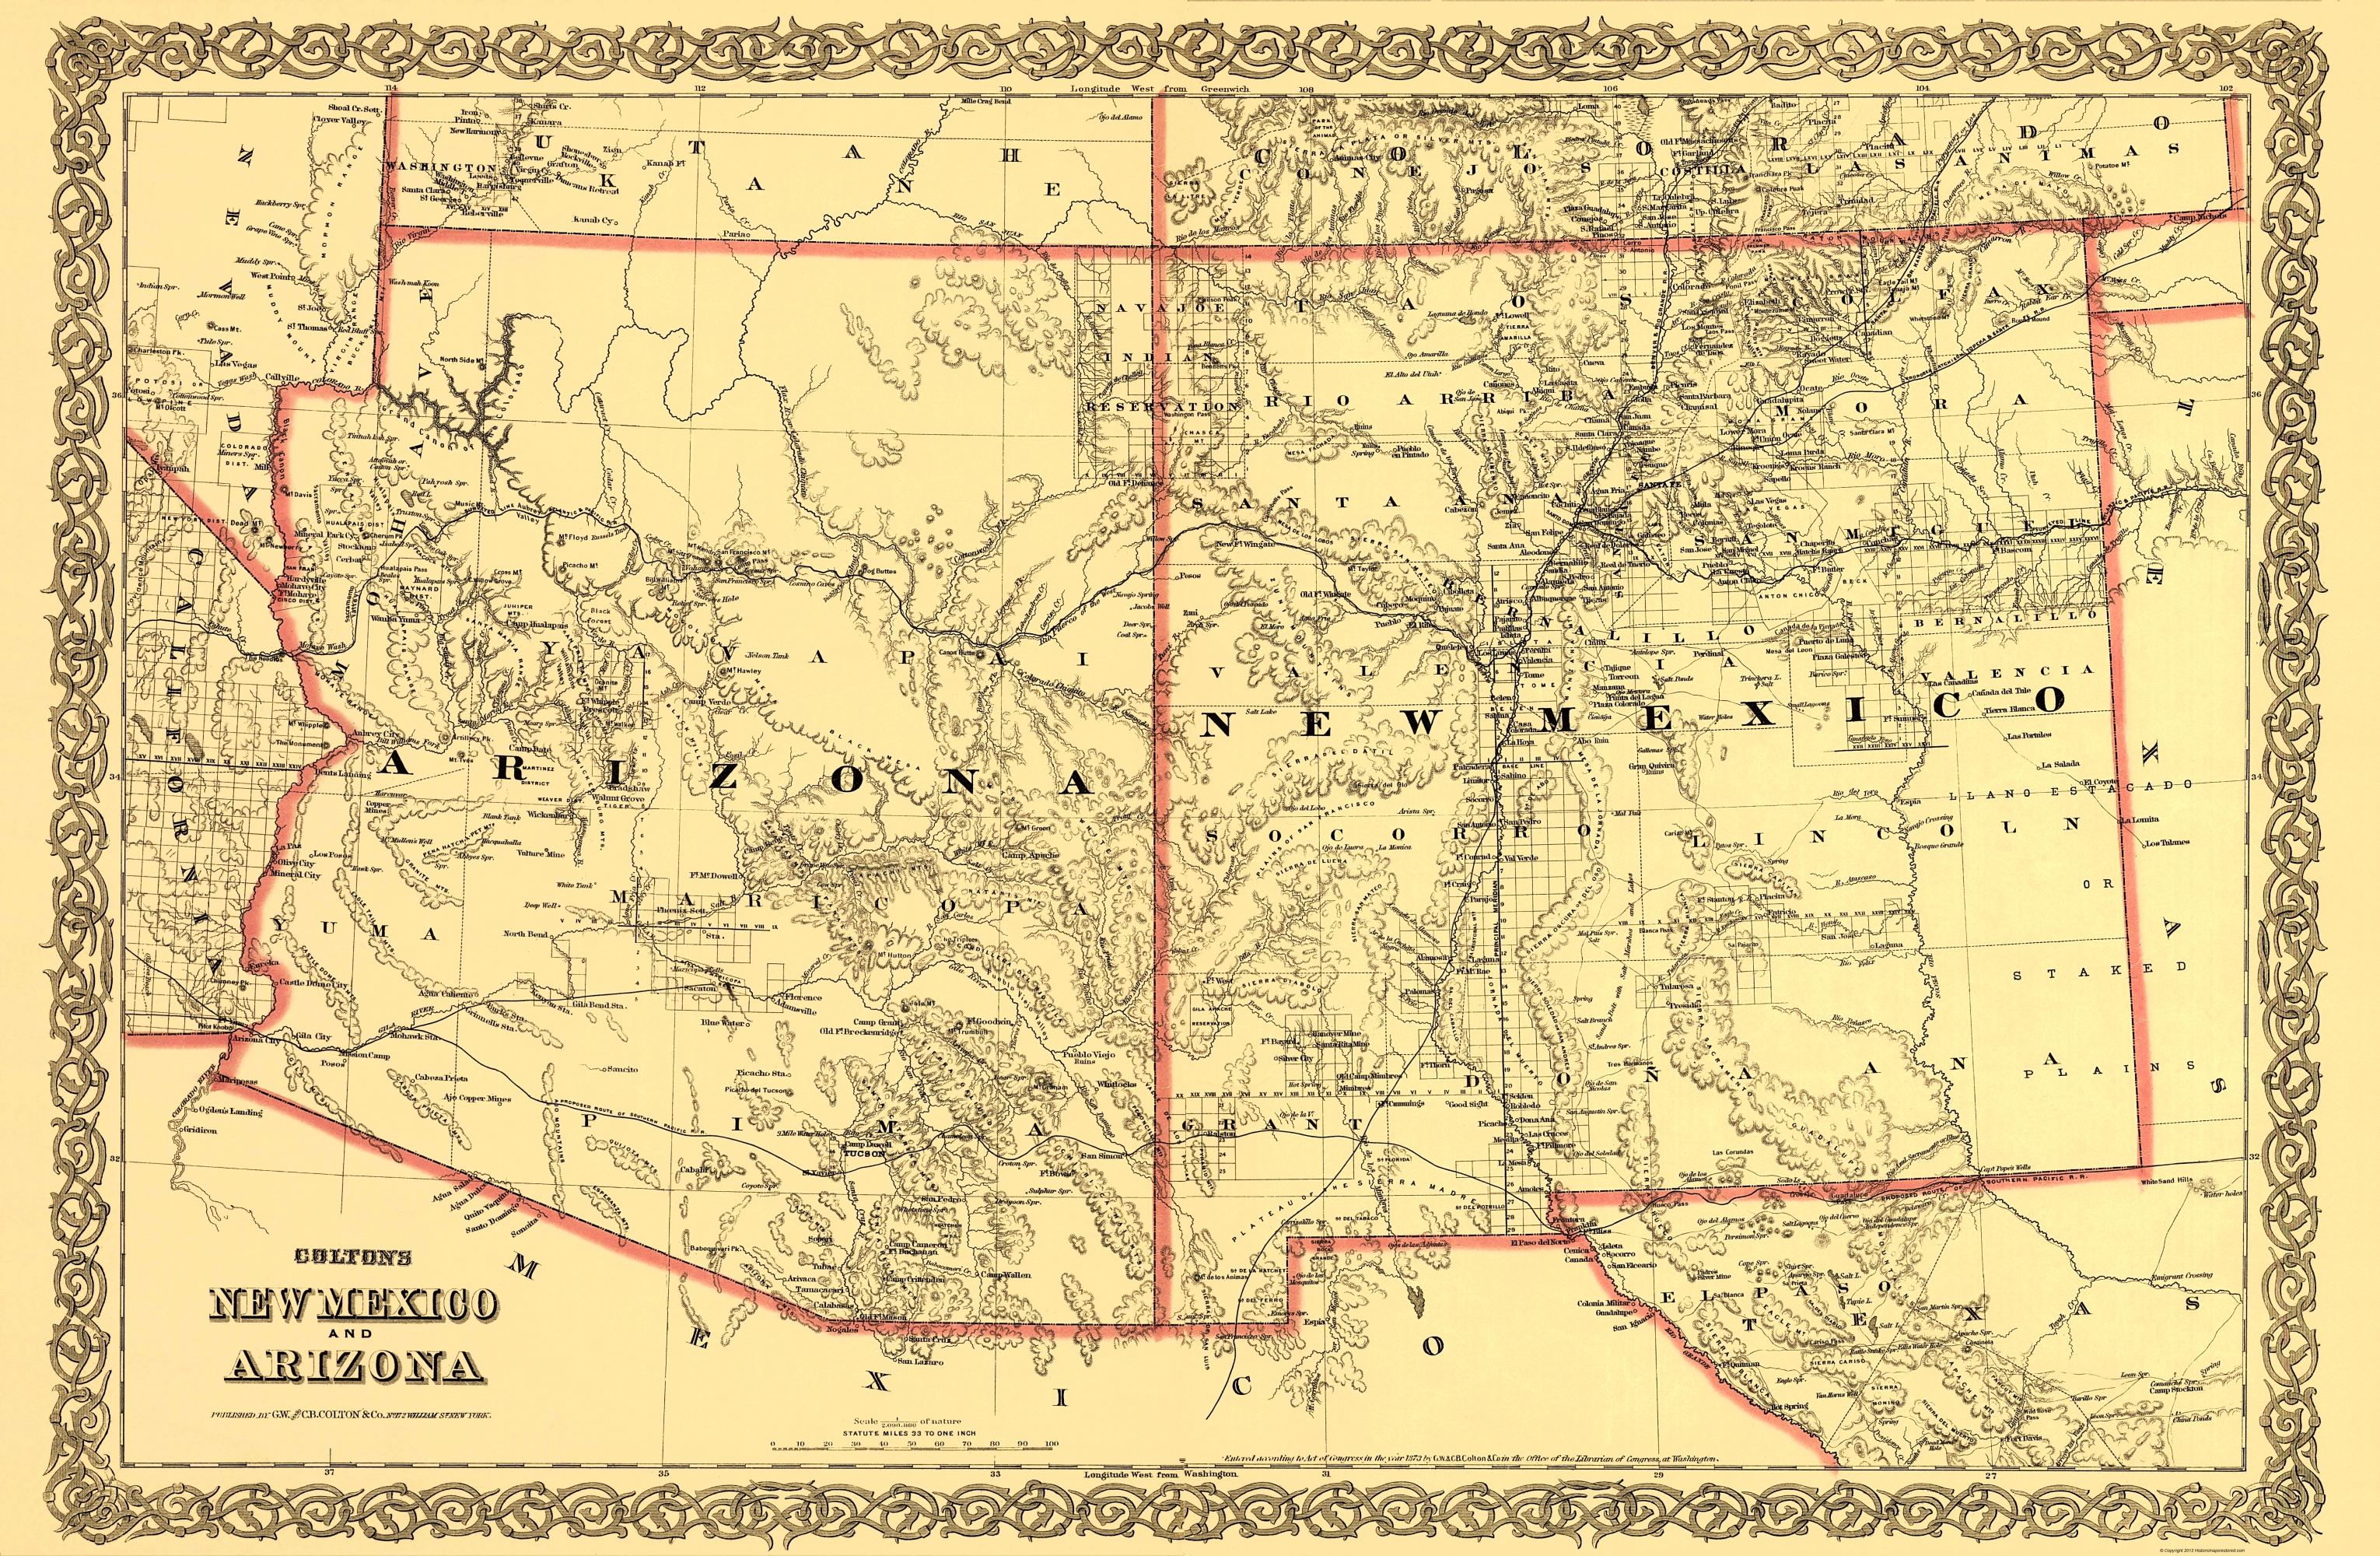 Old State Map - Arizona New Mexico - Colton 1873 - 23 x 35.19